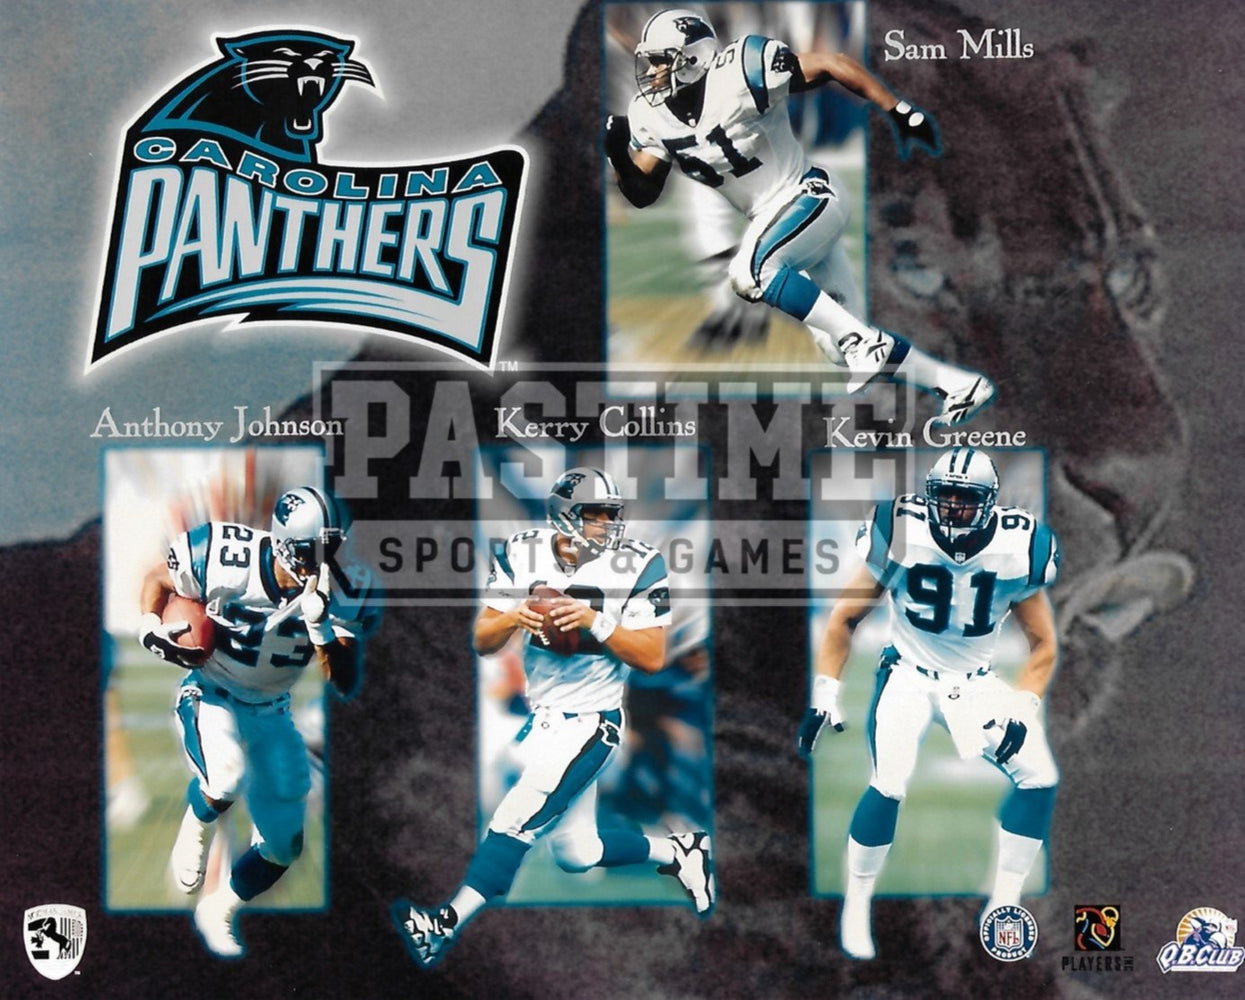 Carolina Panthers 8X10 Player Montage (Mills, Greene, Johmson, Collins) - Pastime Sports & Games